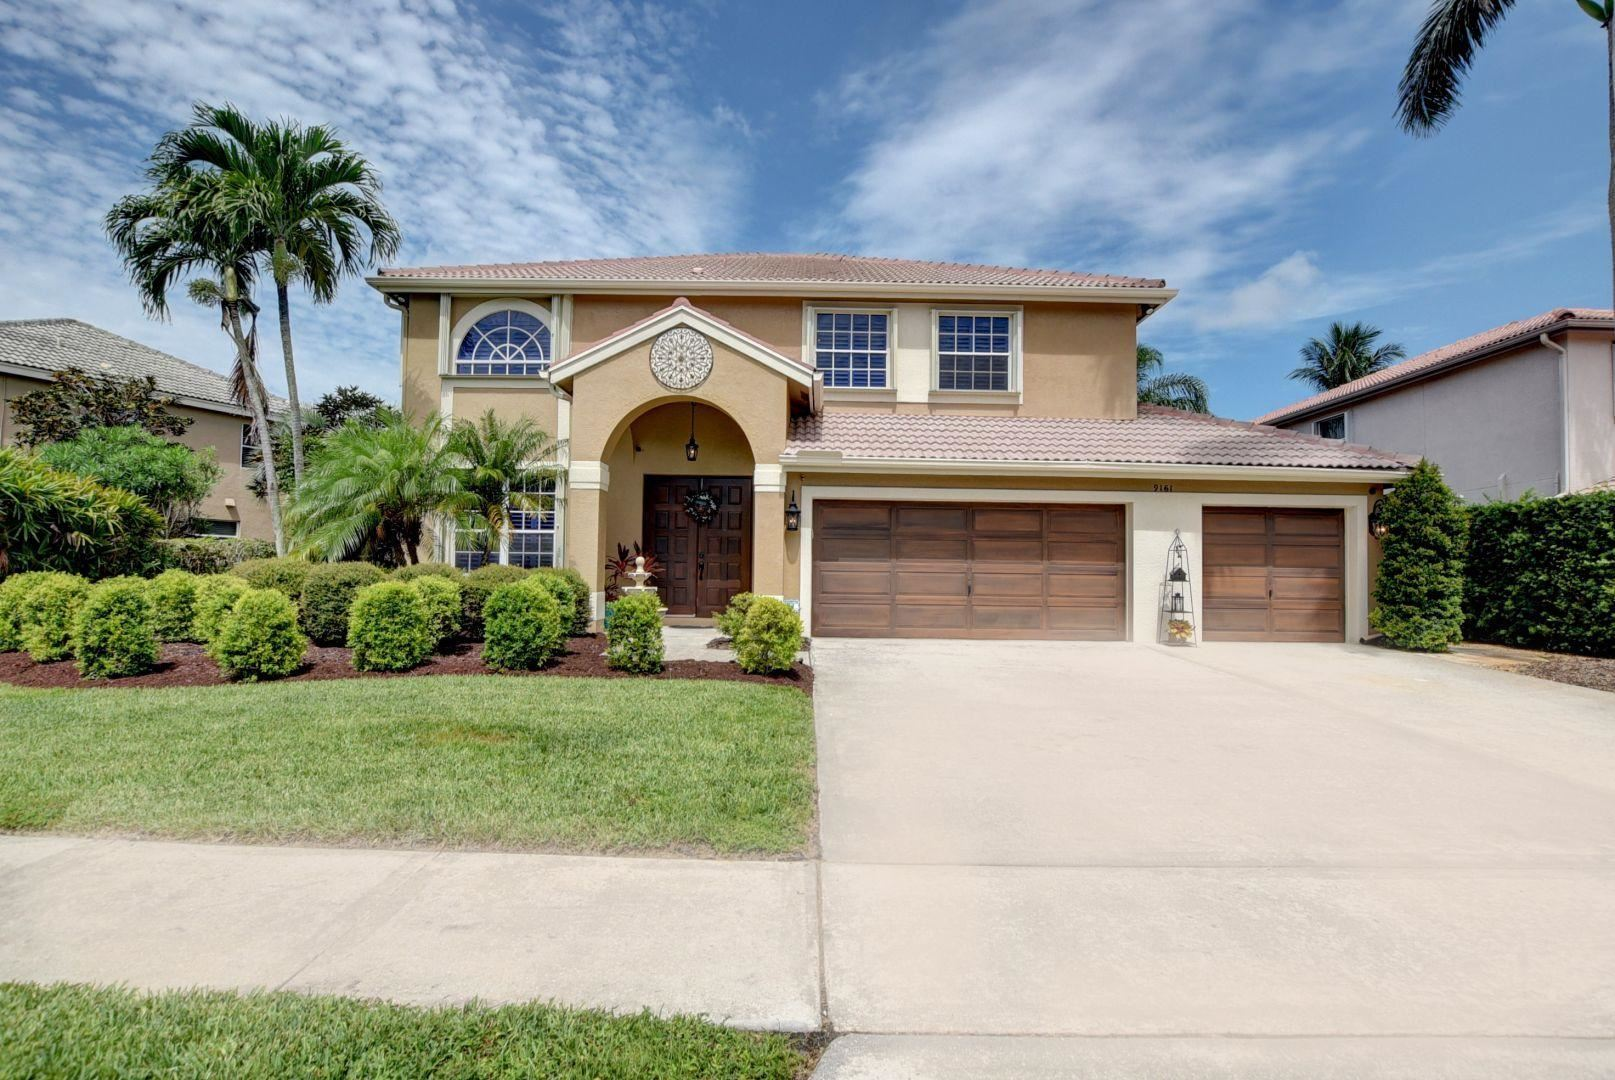 Photo of 9161 Picot Court, Boynton Beach, FL 33472 (MLS # RX-10635295)